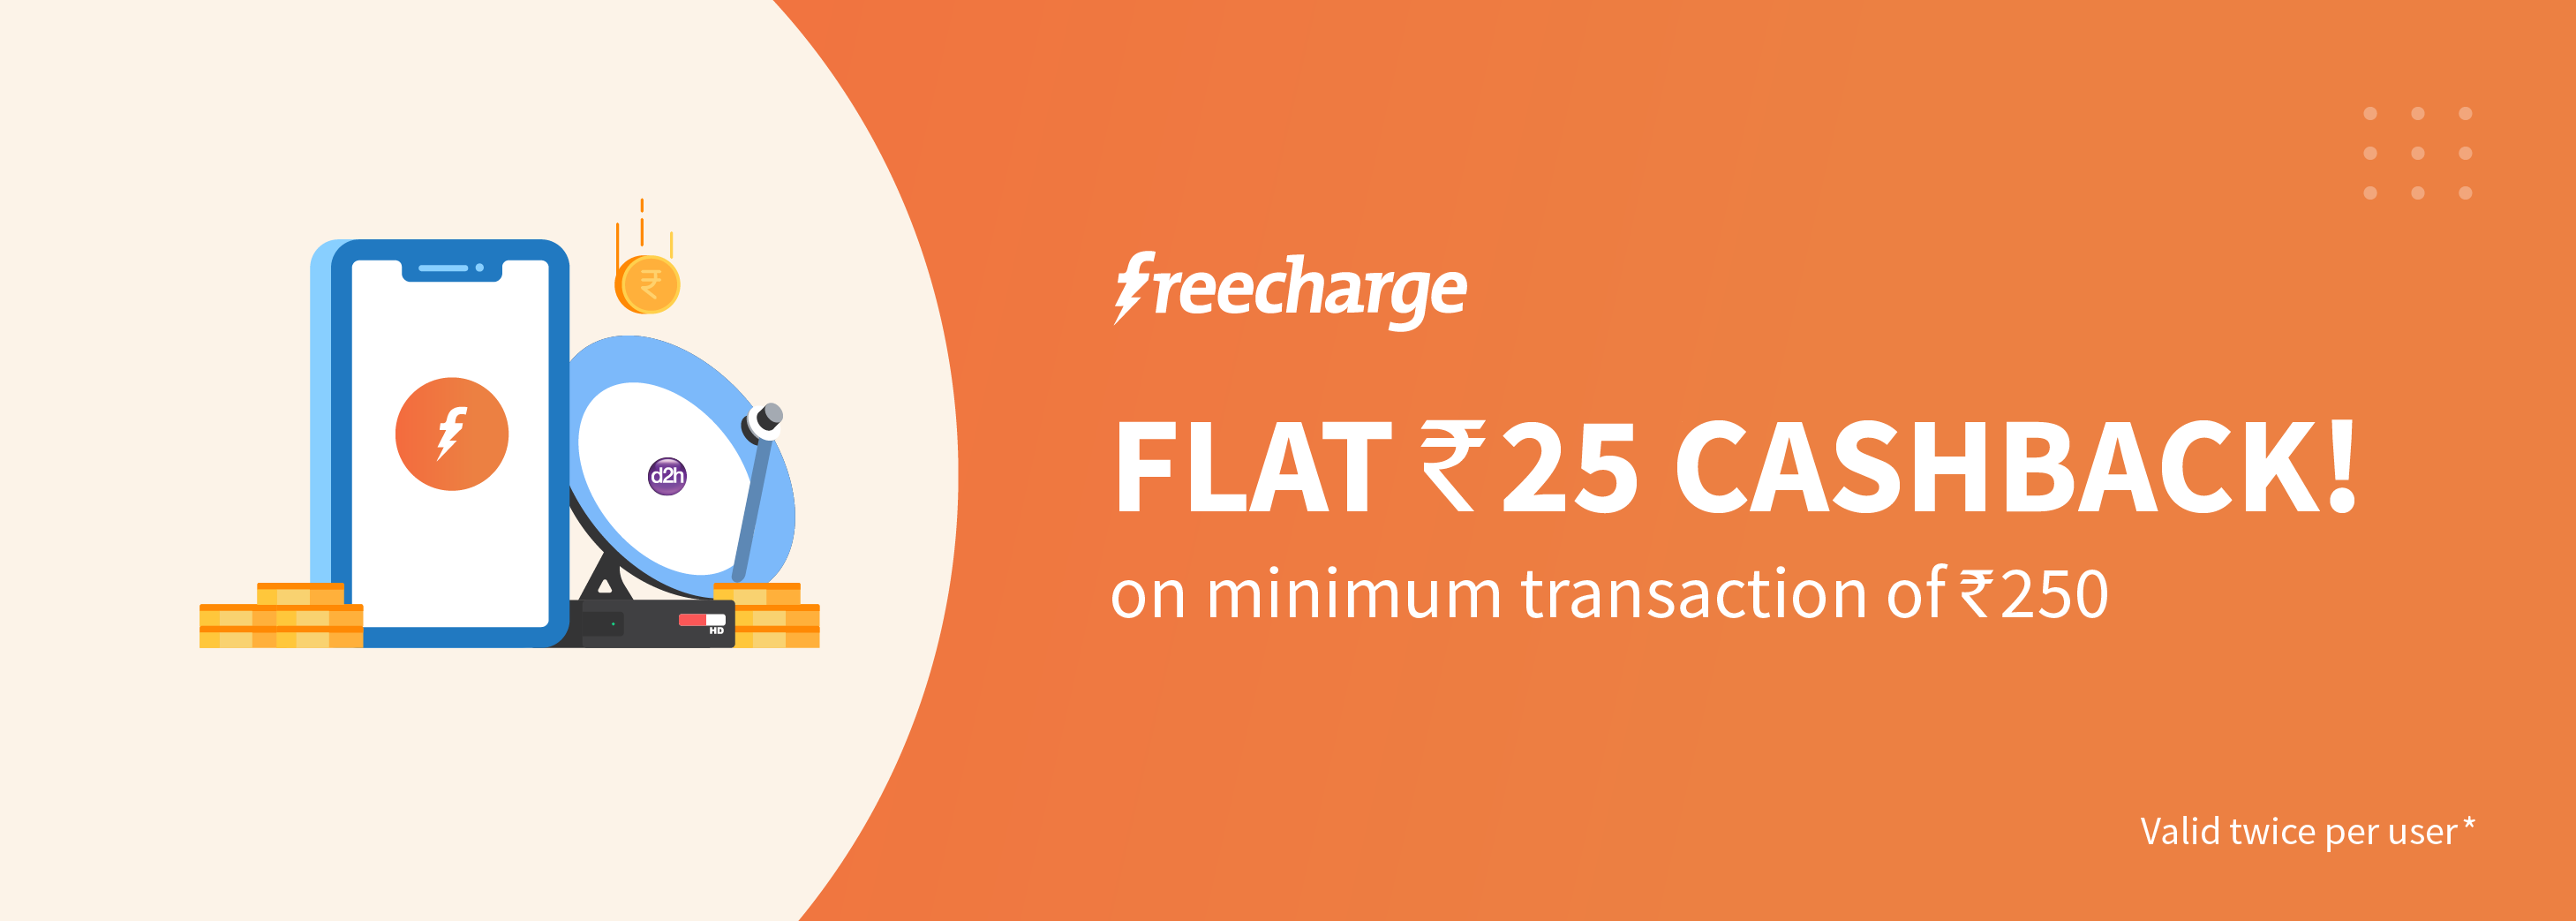 d2h FreeCharge Offer